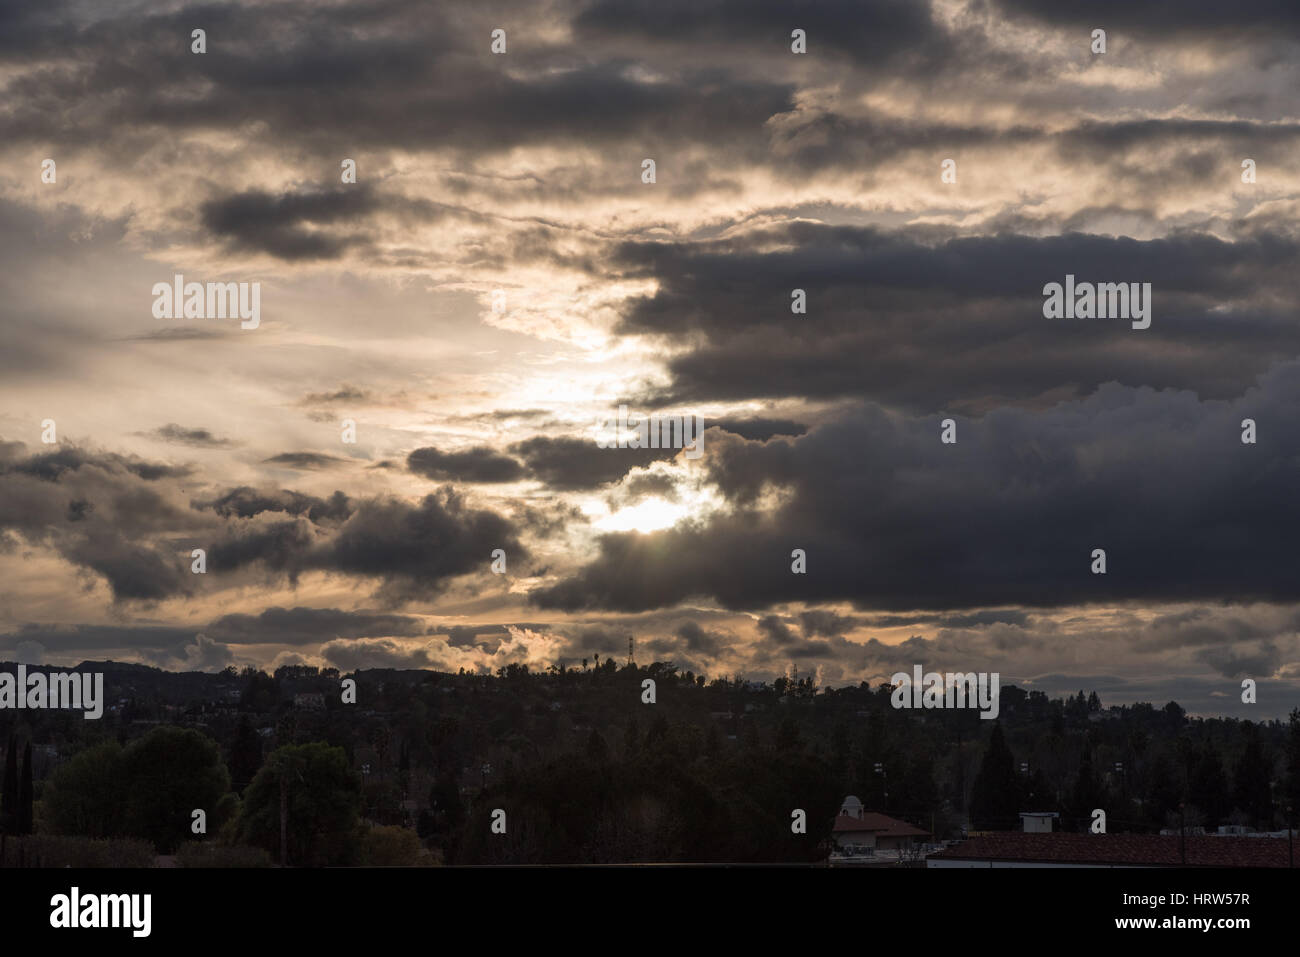 Sunset in Los Angeles - Stock Image